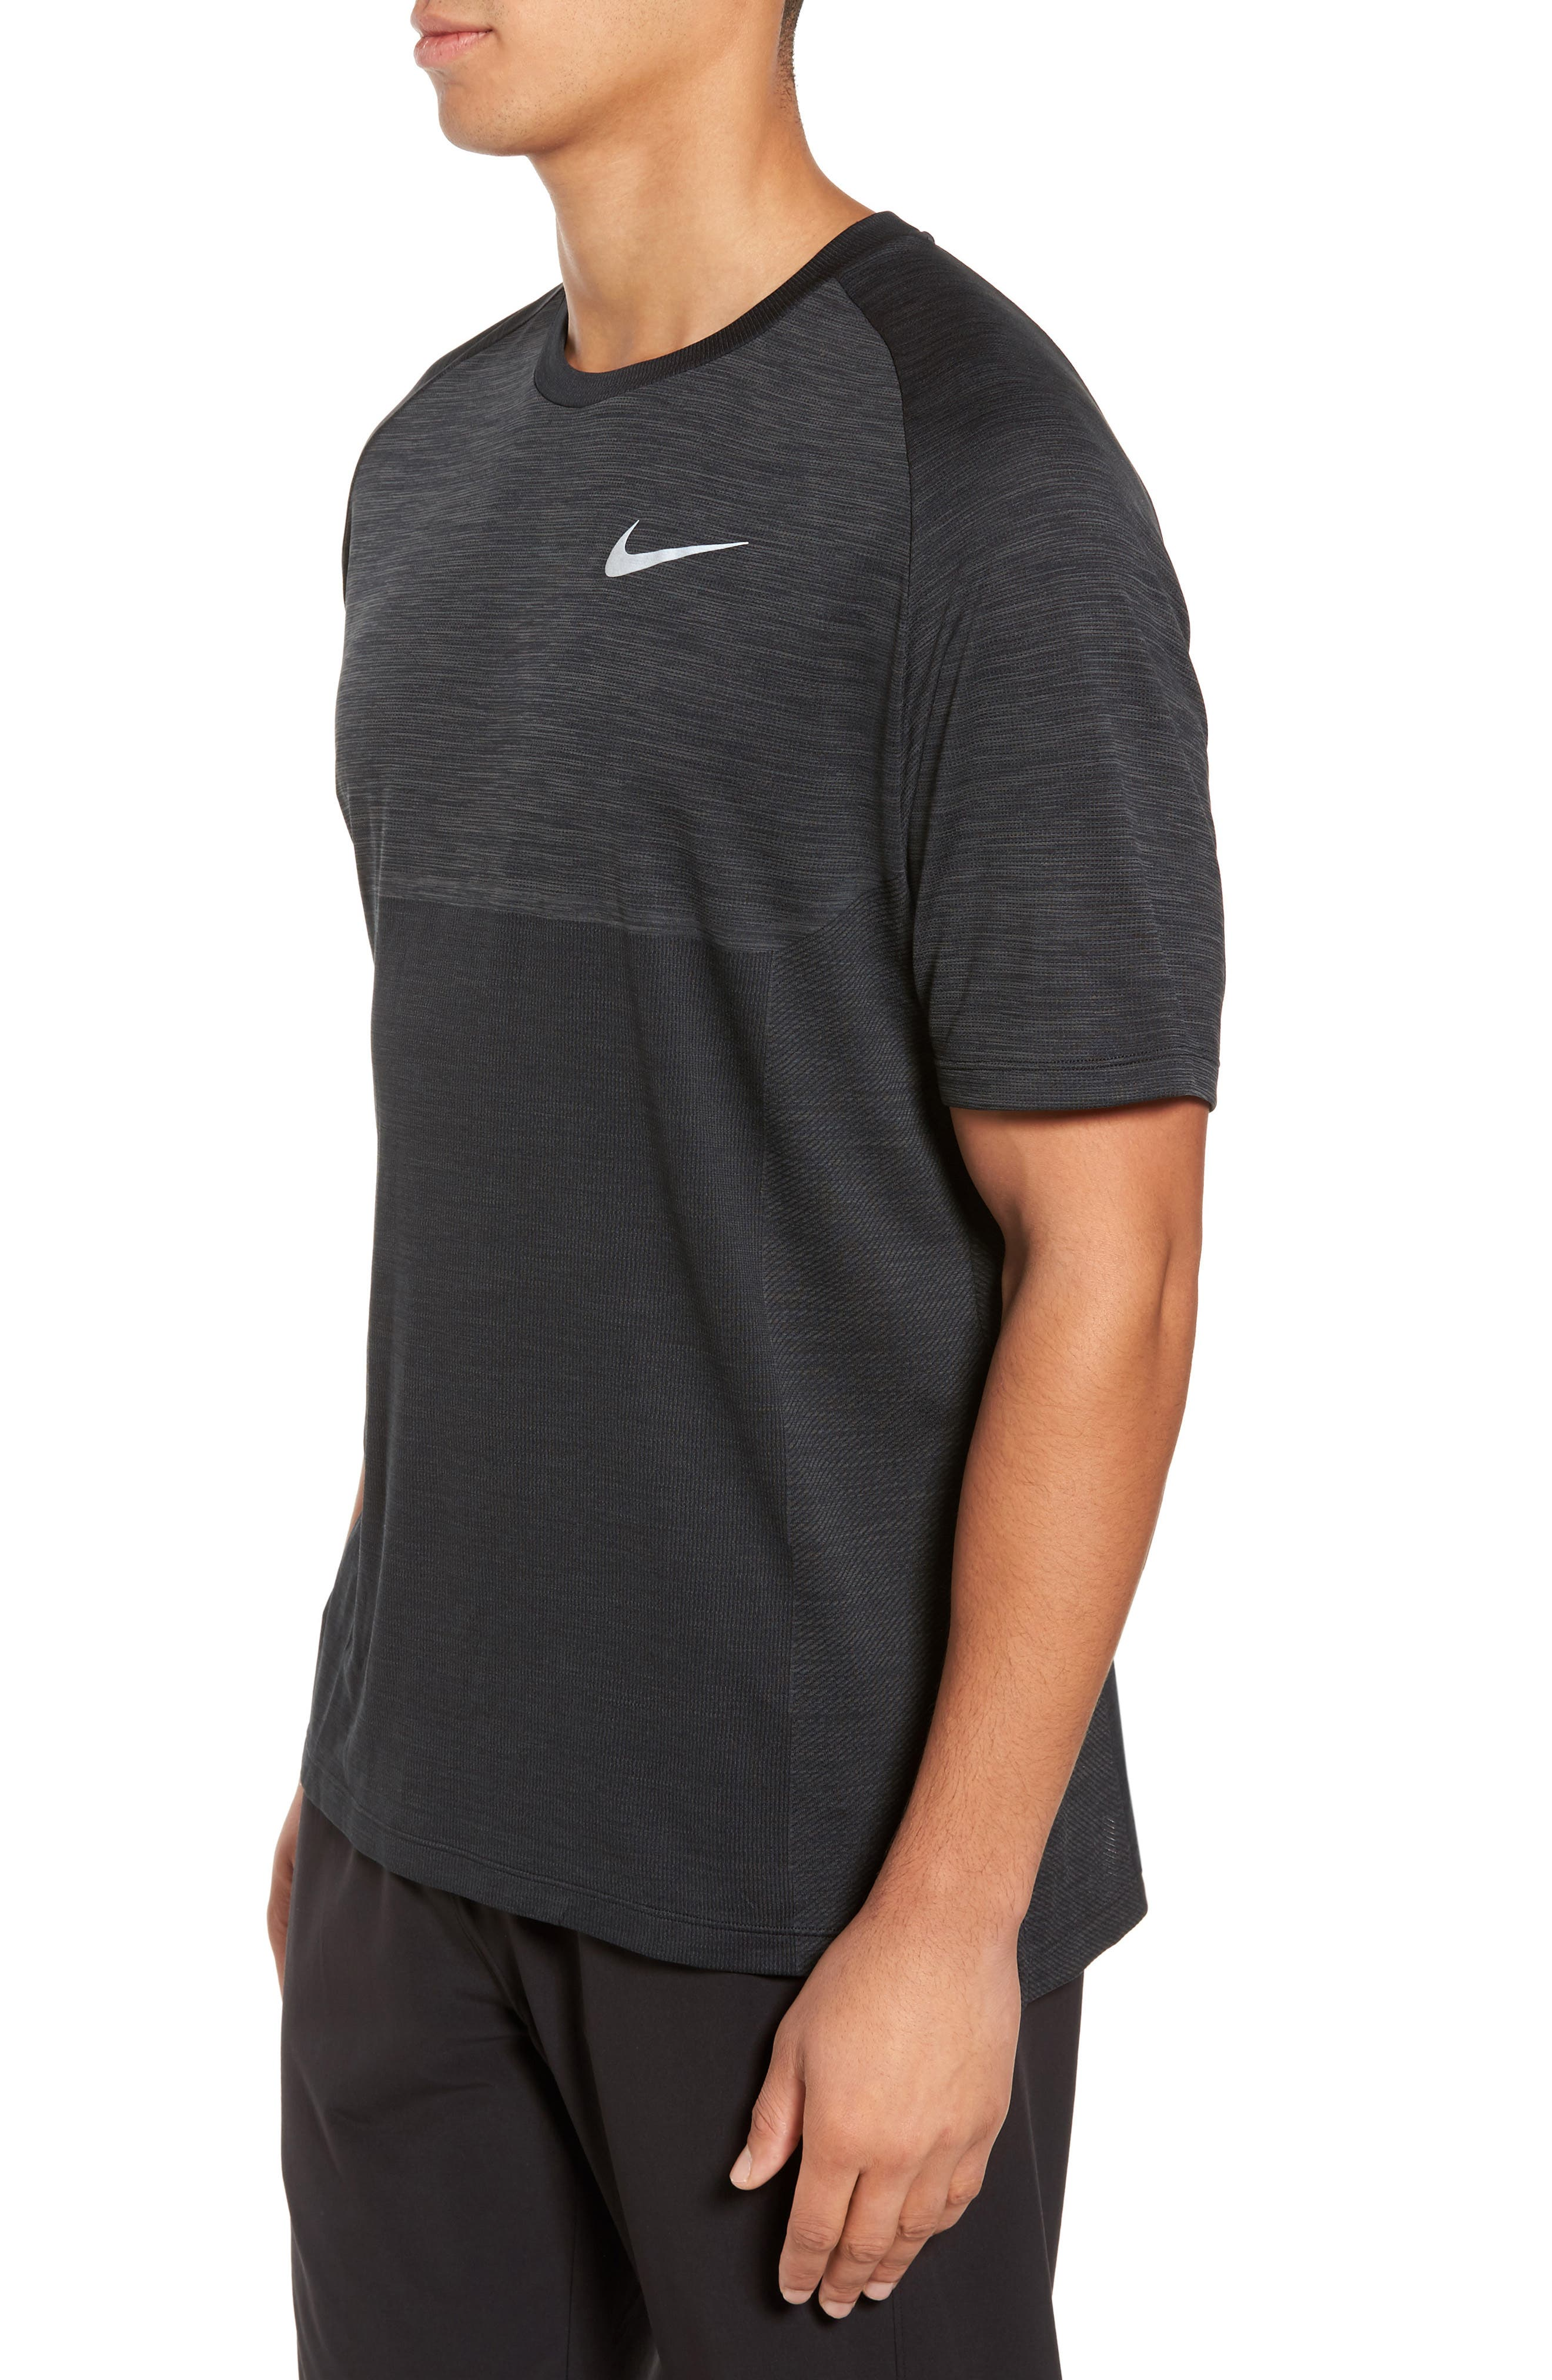 Dry Medalist Running Top,                             Alternate thumbnail 3, color,                             ANTHRACITE/ BLACK